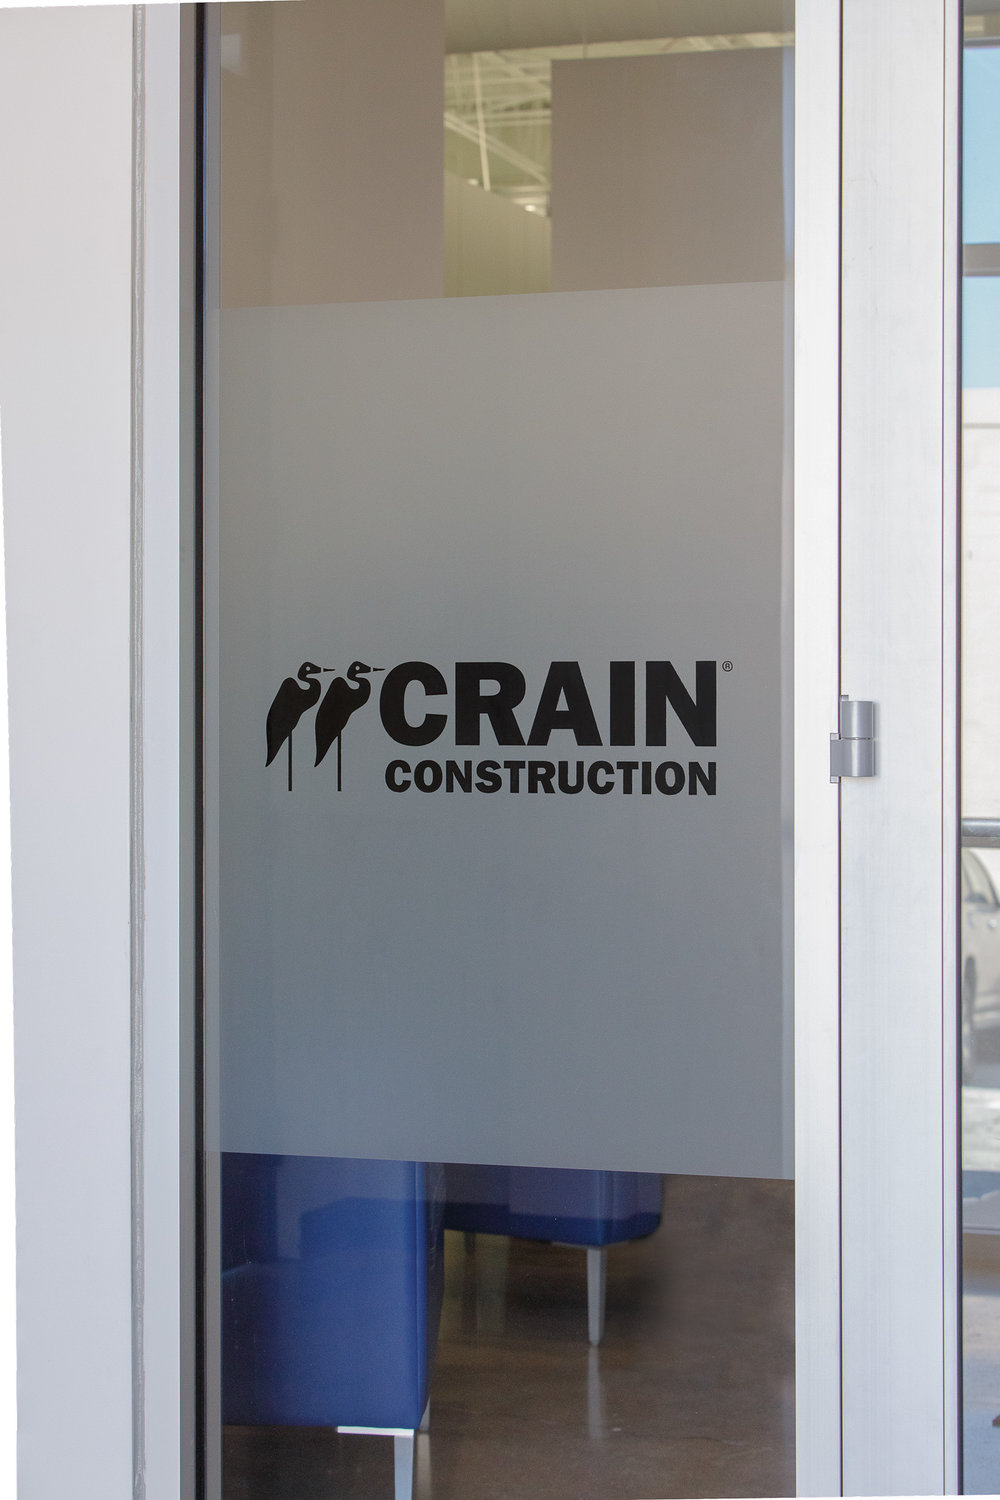 Crain Construction_Brand Identity Signage_Commercial Window Film_MG_8024-Edit_small 2000 px.jpg